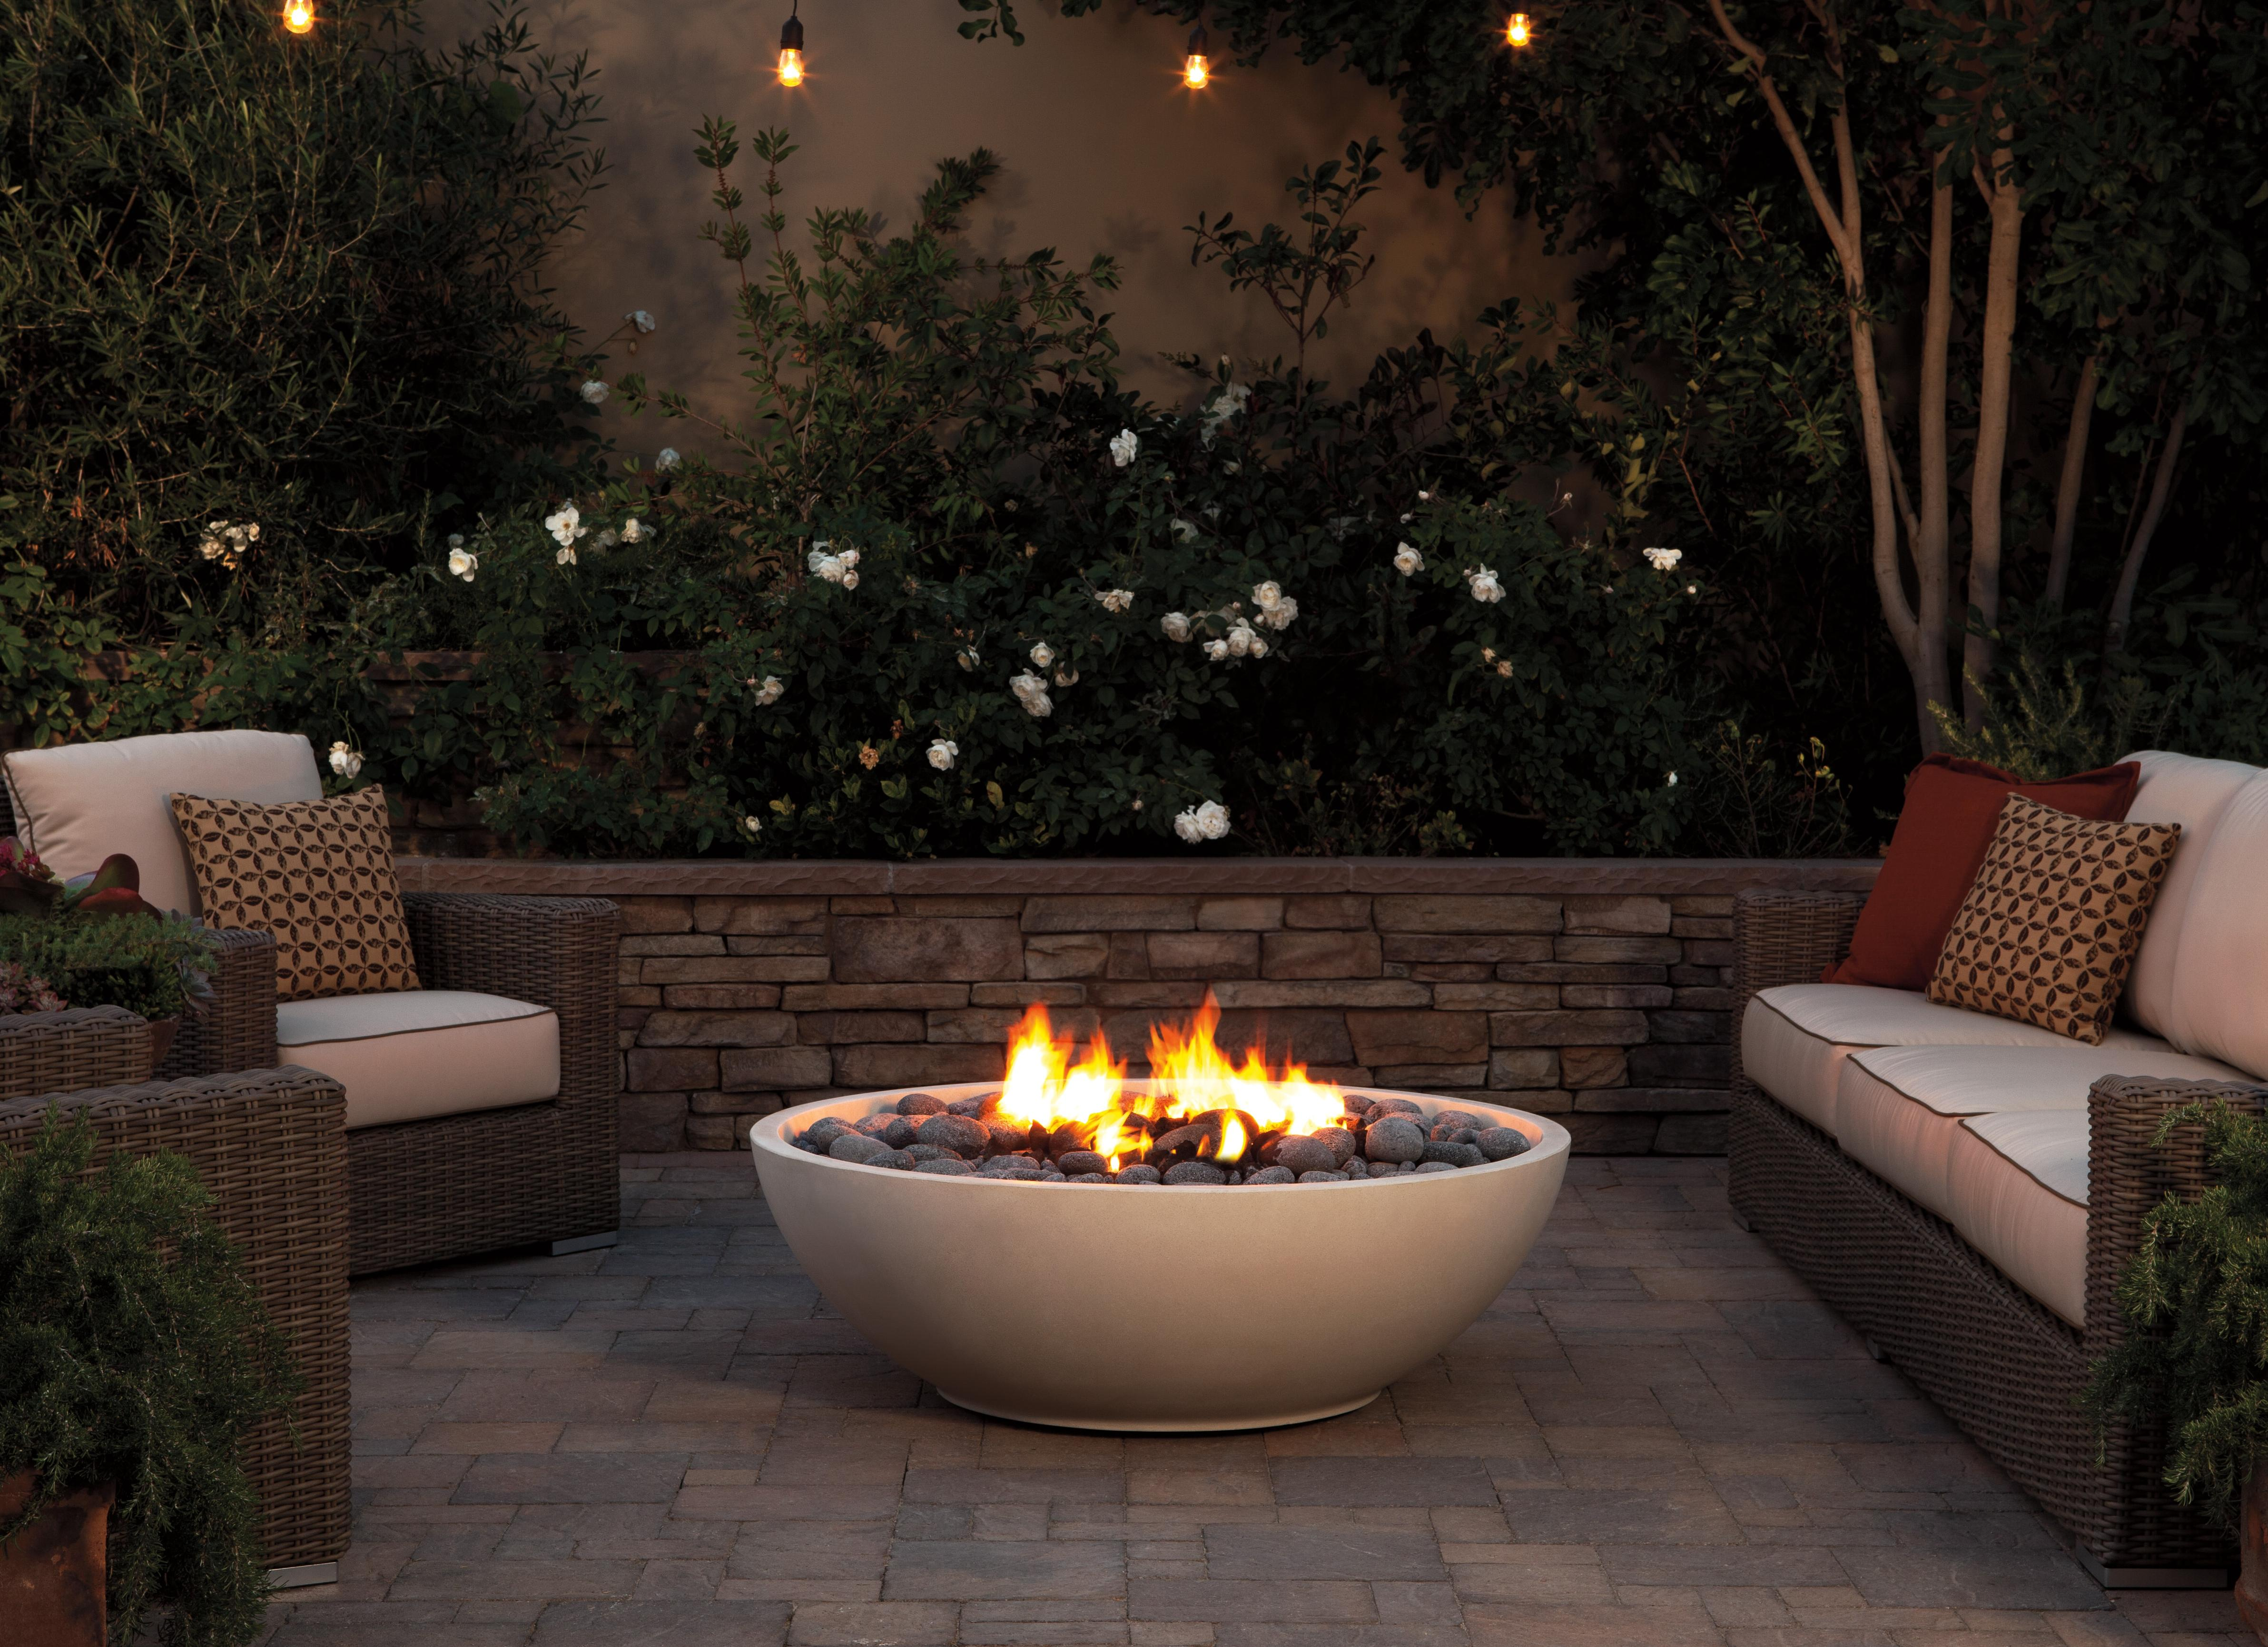 Trends in Outdoor Living - A Show Case of Har